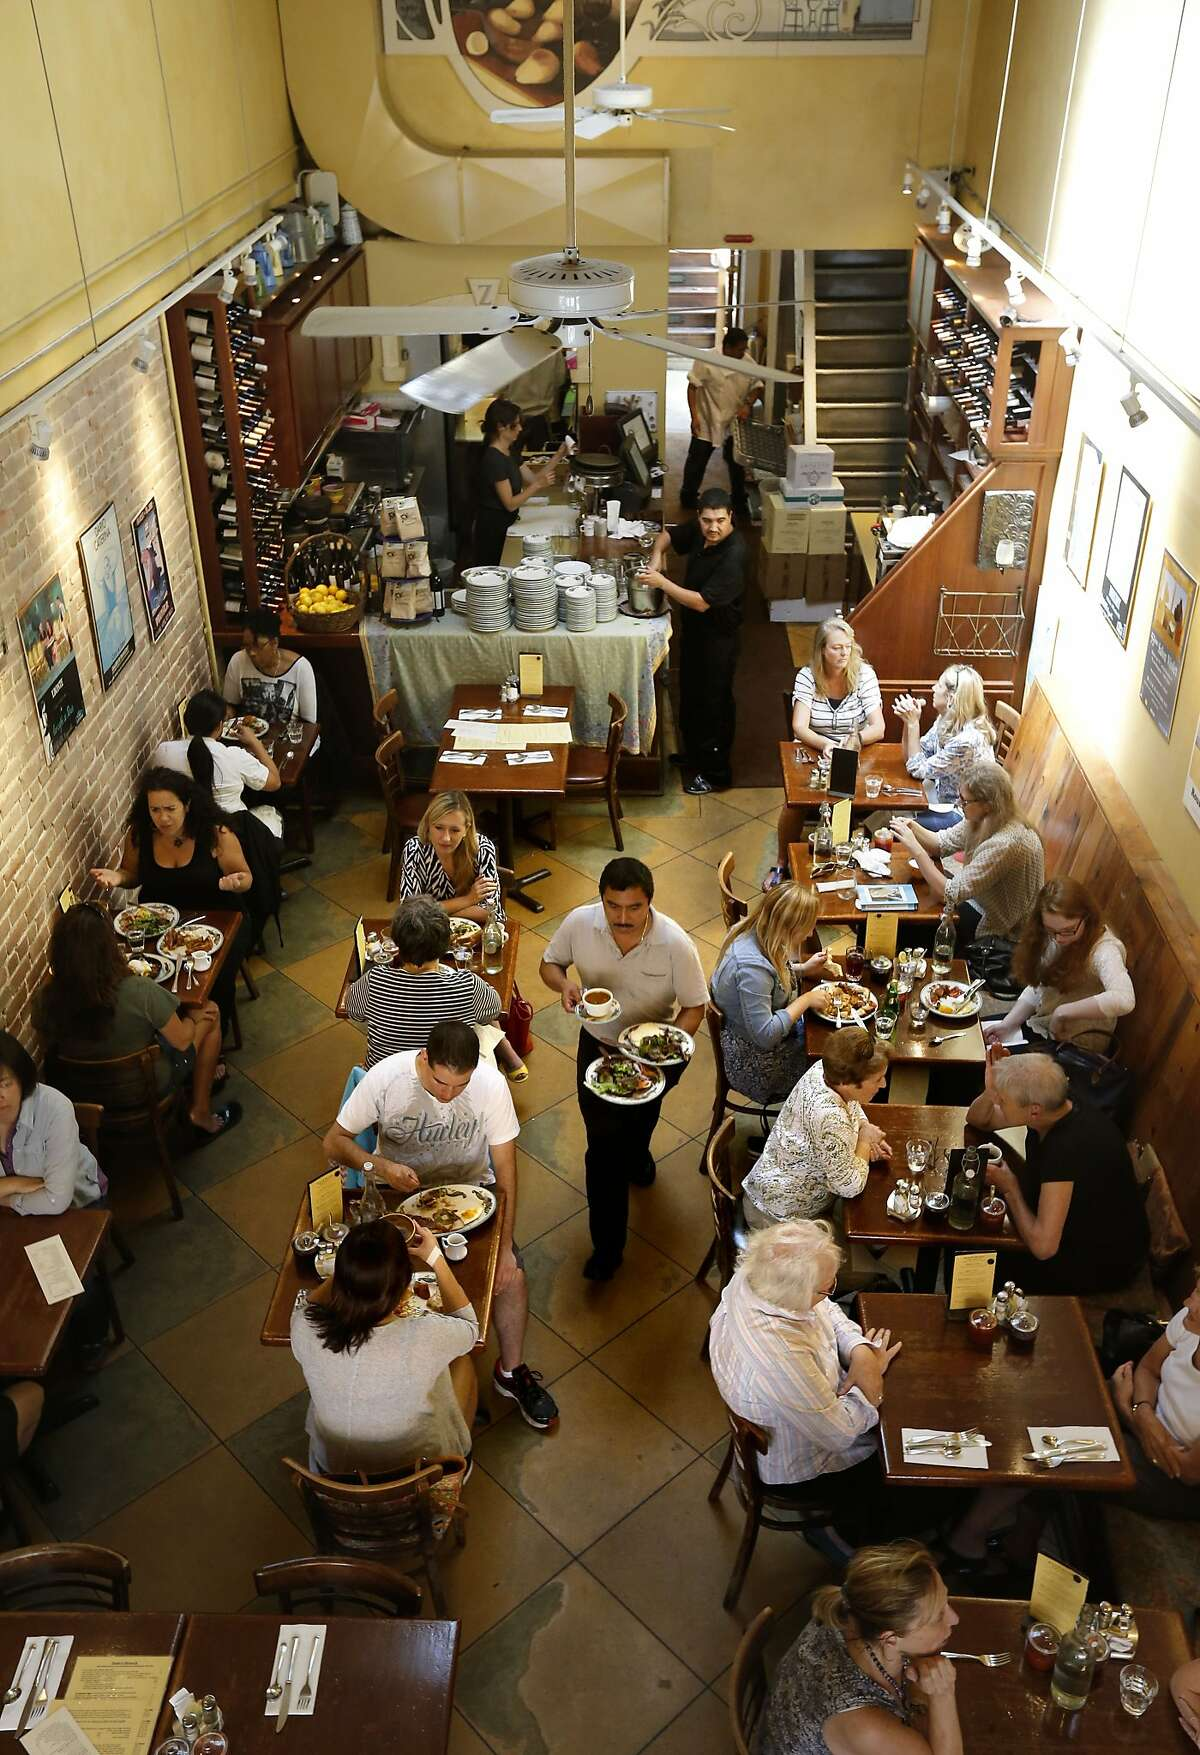 The lunchtime crowd being served at Zazie restaurant, in San Francisco, Calif., on Wednesday Aug. 27, 2014. Jen Piallat owner of Zazie offers her employees fixed schedules, full benefits and matching 401k plans and she says her business is more successful for it.